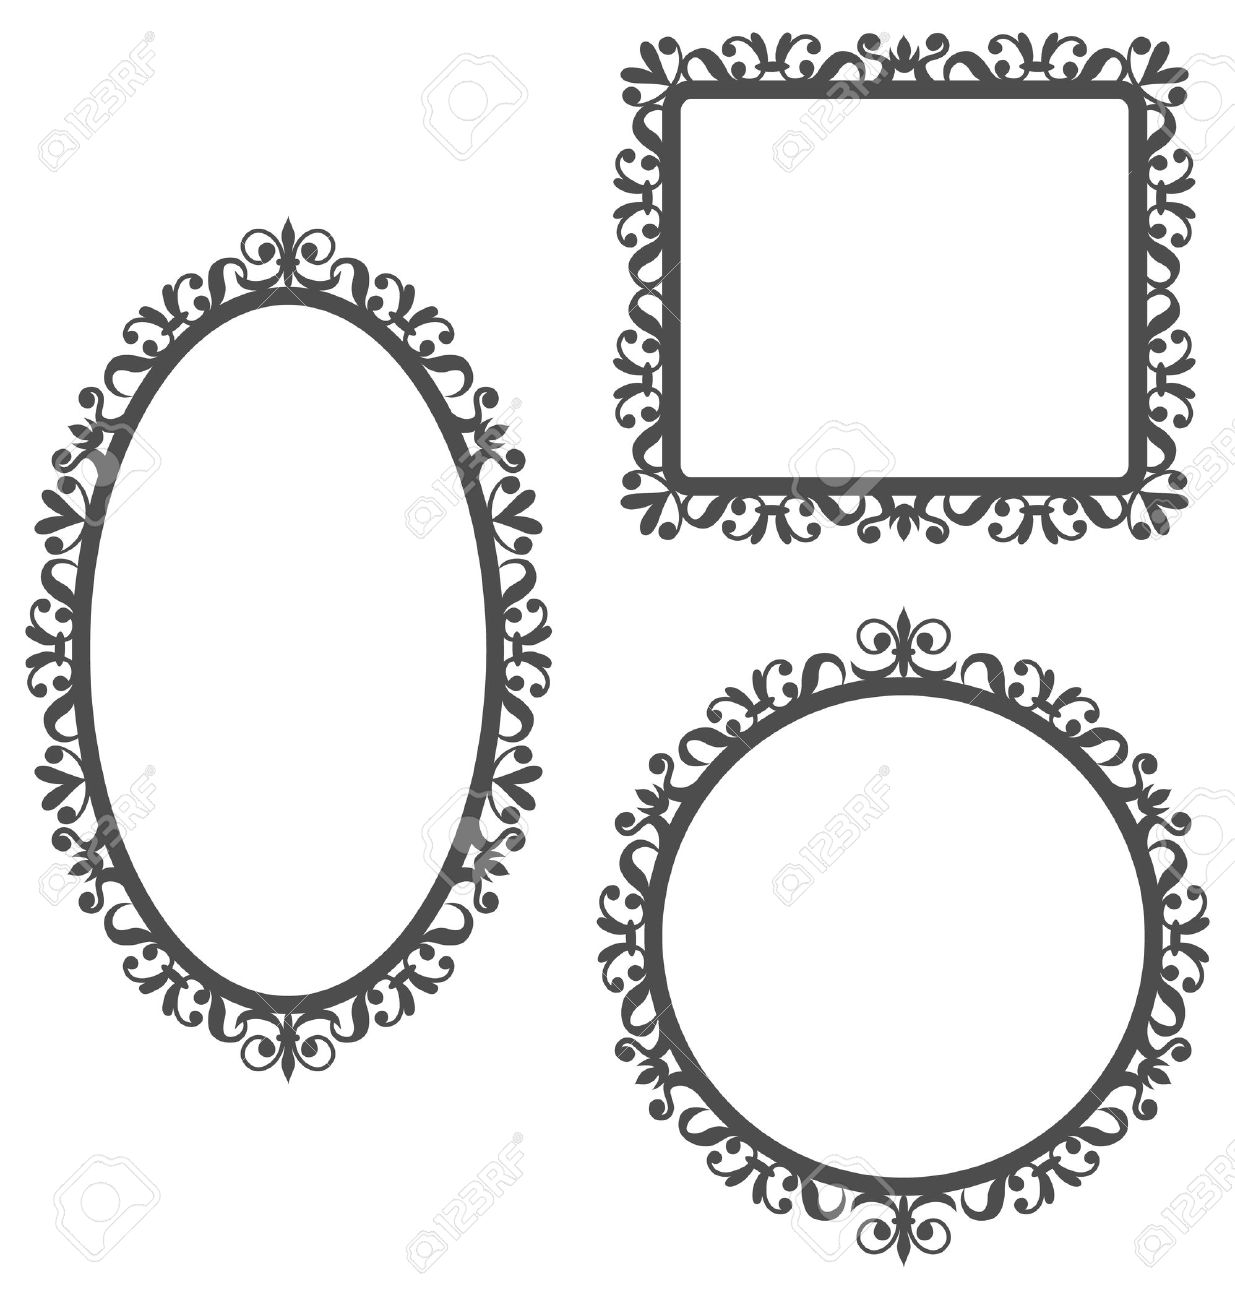 Three Black Vintage Frames In Different Shapes Isolated On White Background Stock Vector